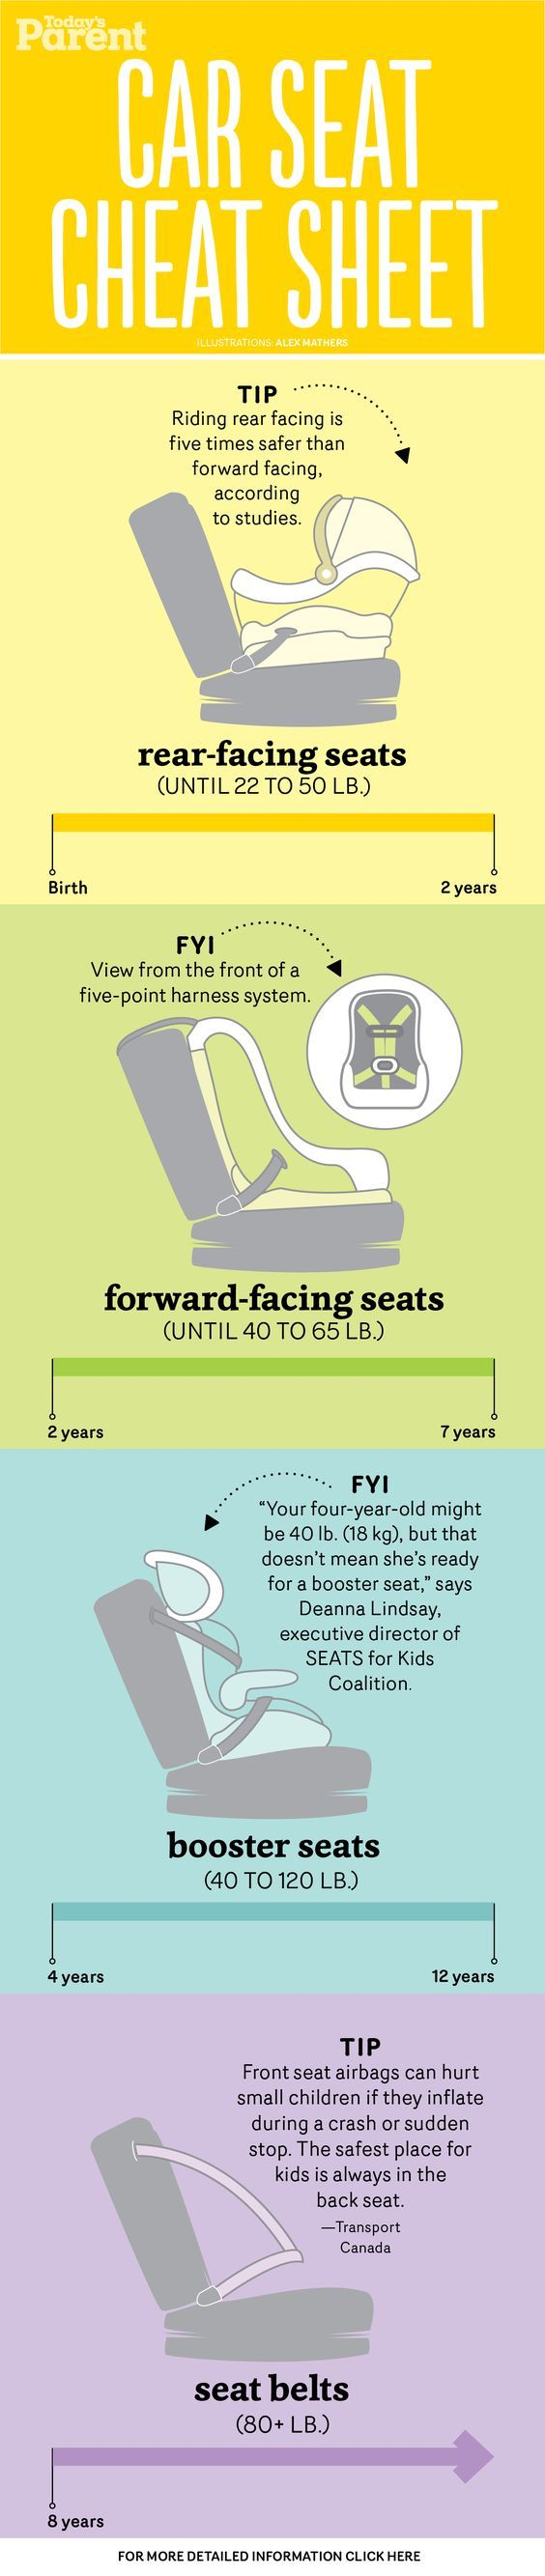 24 best Car Seat Safety images on Pinterest | Kids safety ...